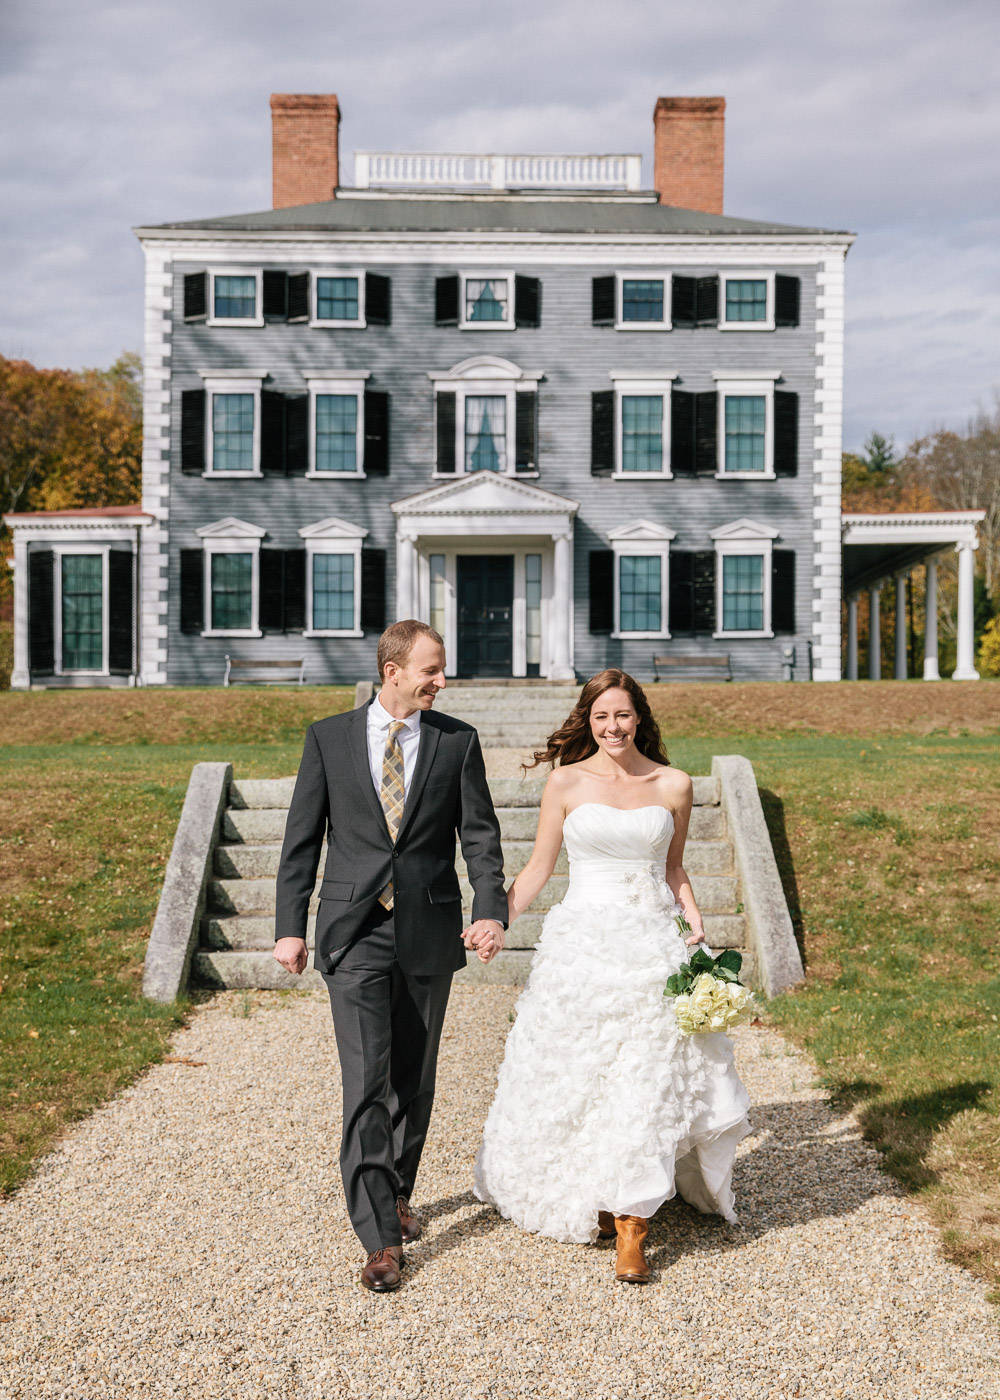 new-england-historic-wedding-photography-michael-tallman-1